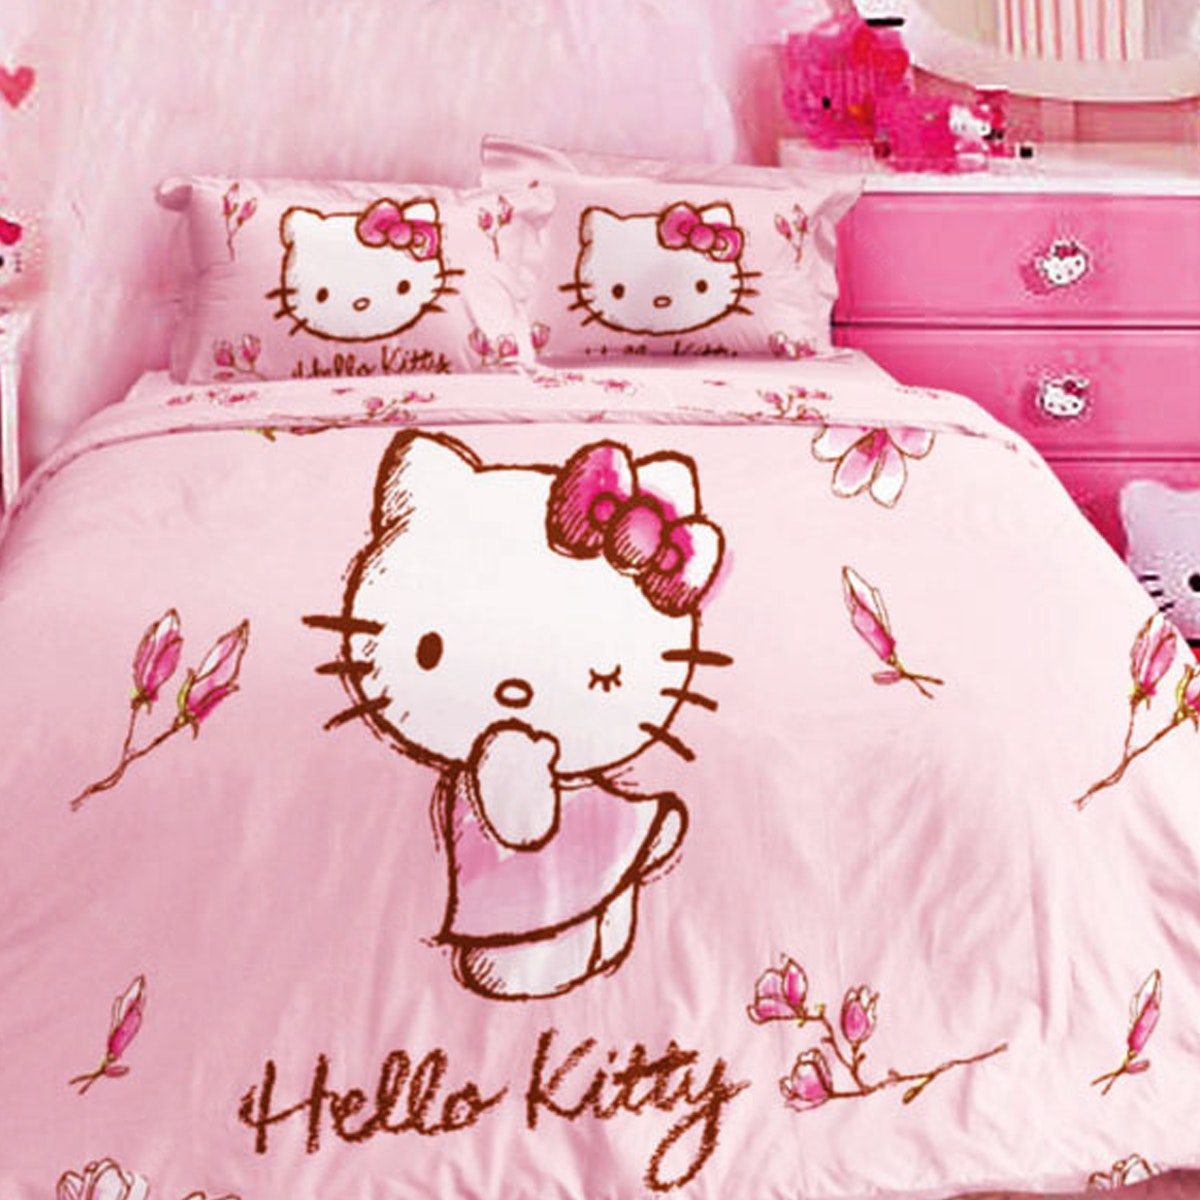 Rise Bedcover Double Hello kitty Magnolia Pink 230x230cm